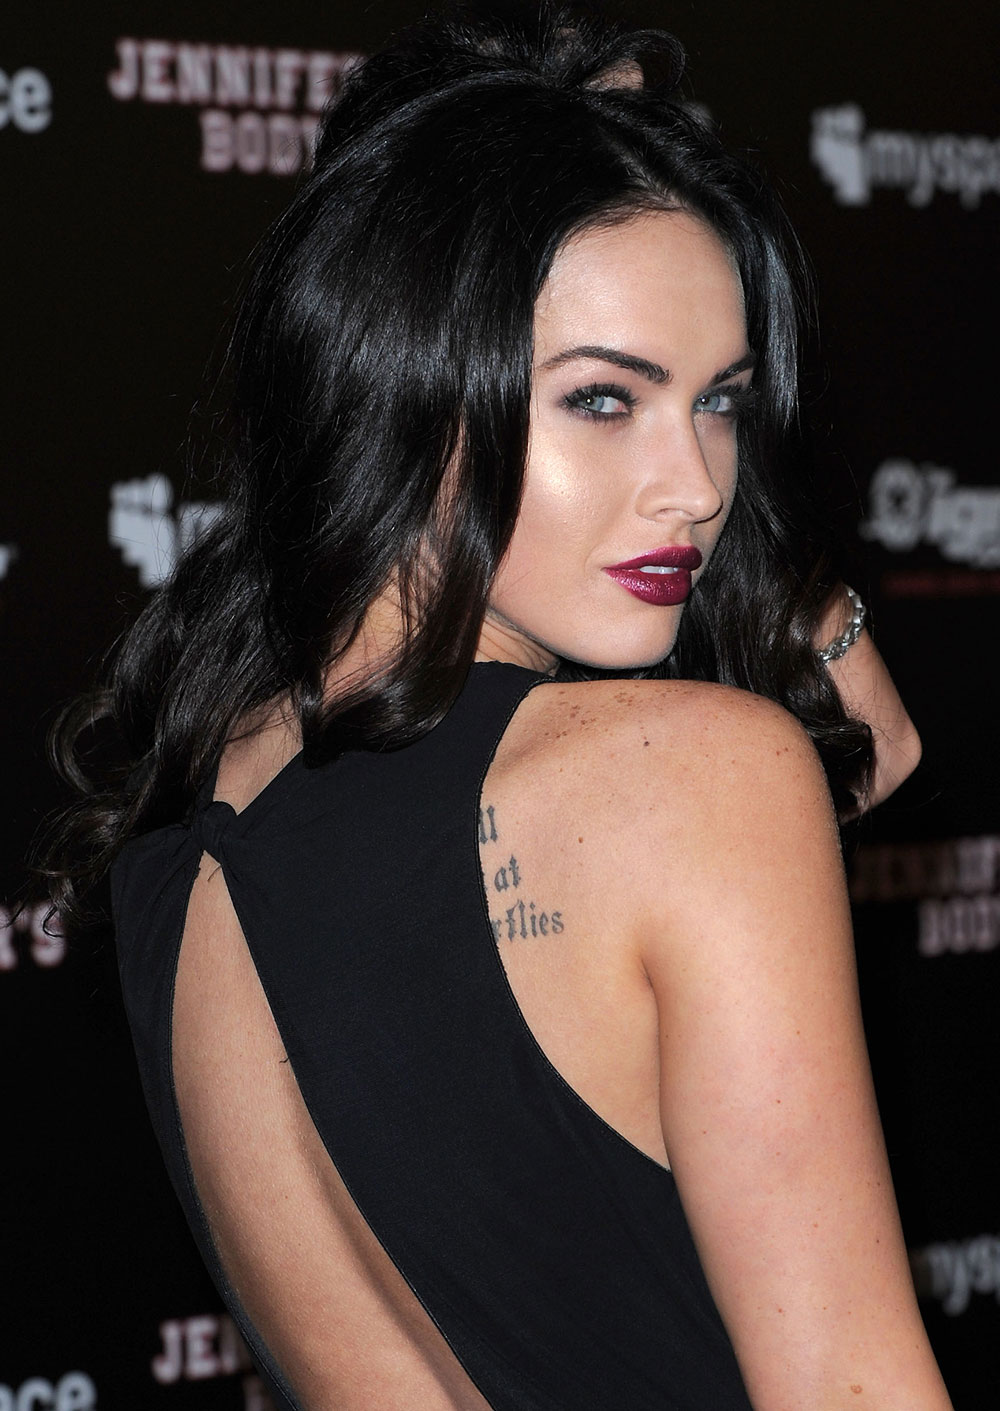 megan fox makeup looks. Celebrity Makeup: Megan Fox at